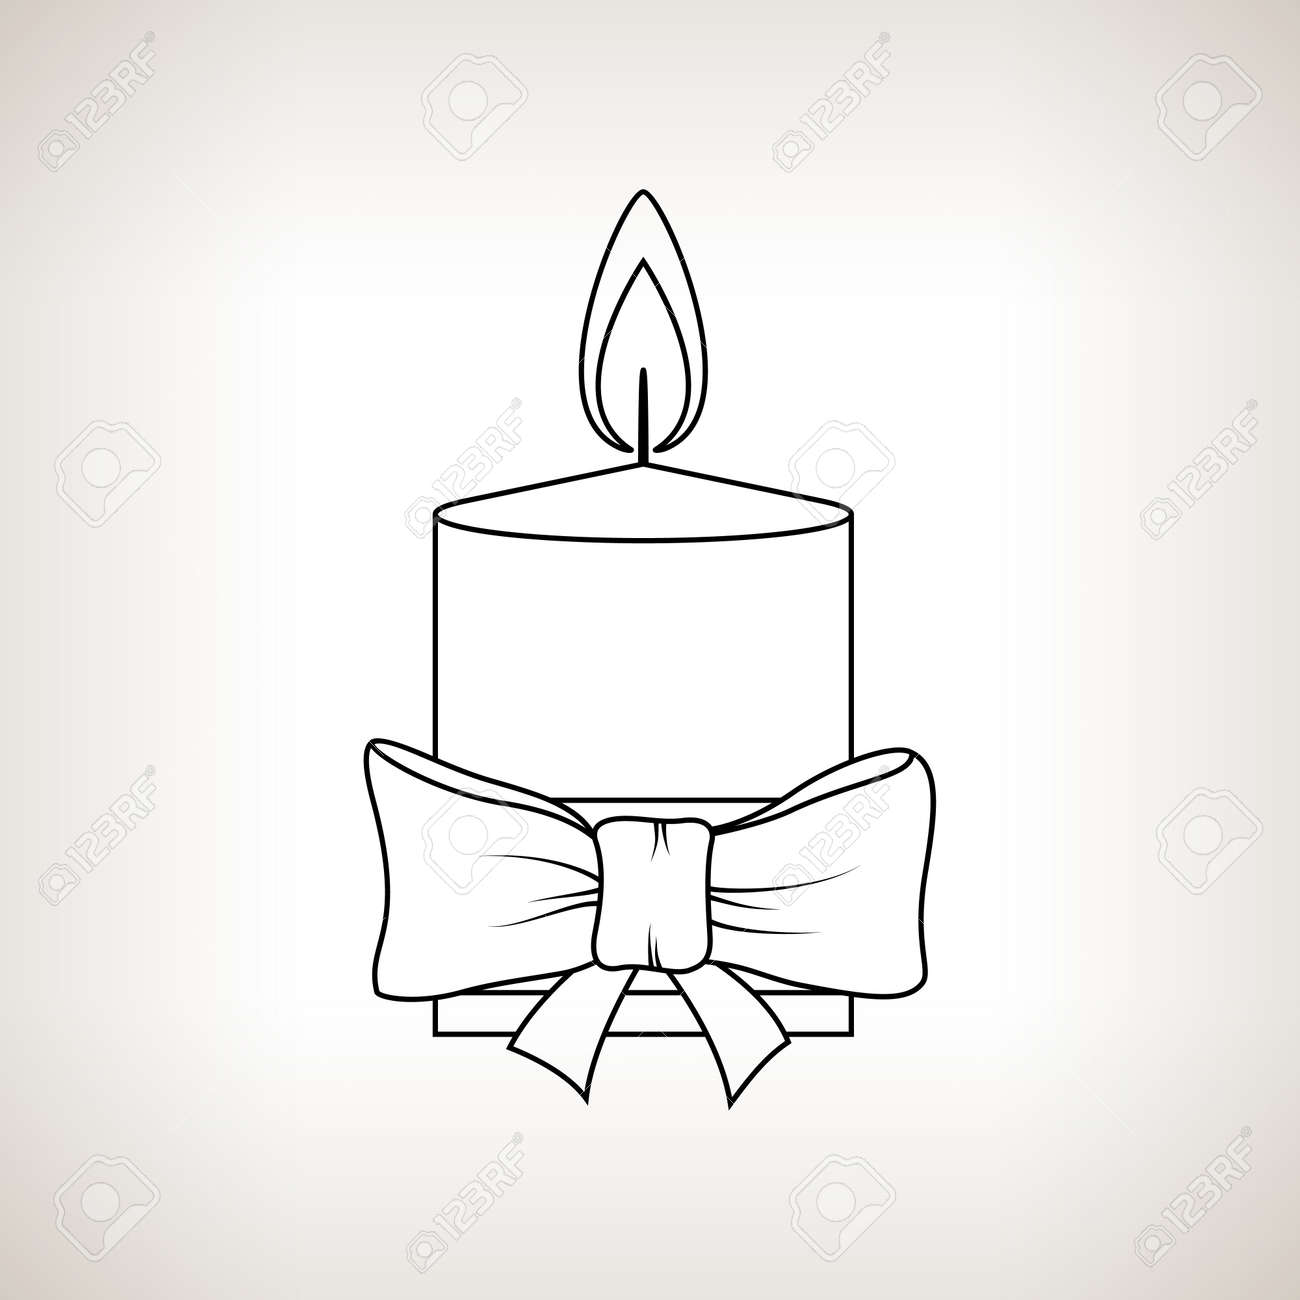 Drawings Of Christmas Decorations.Christmas Festive Candle On A Light Background Christmas Decorations